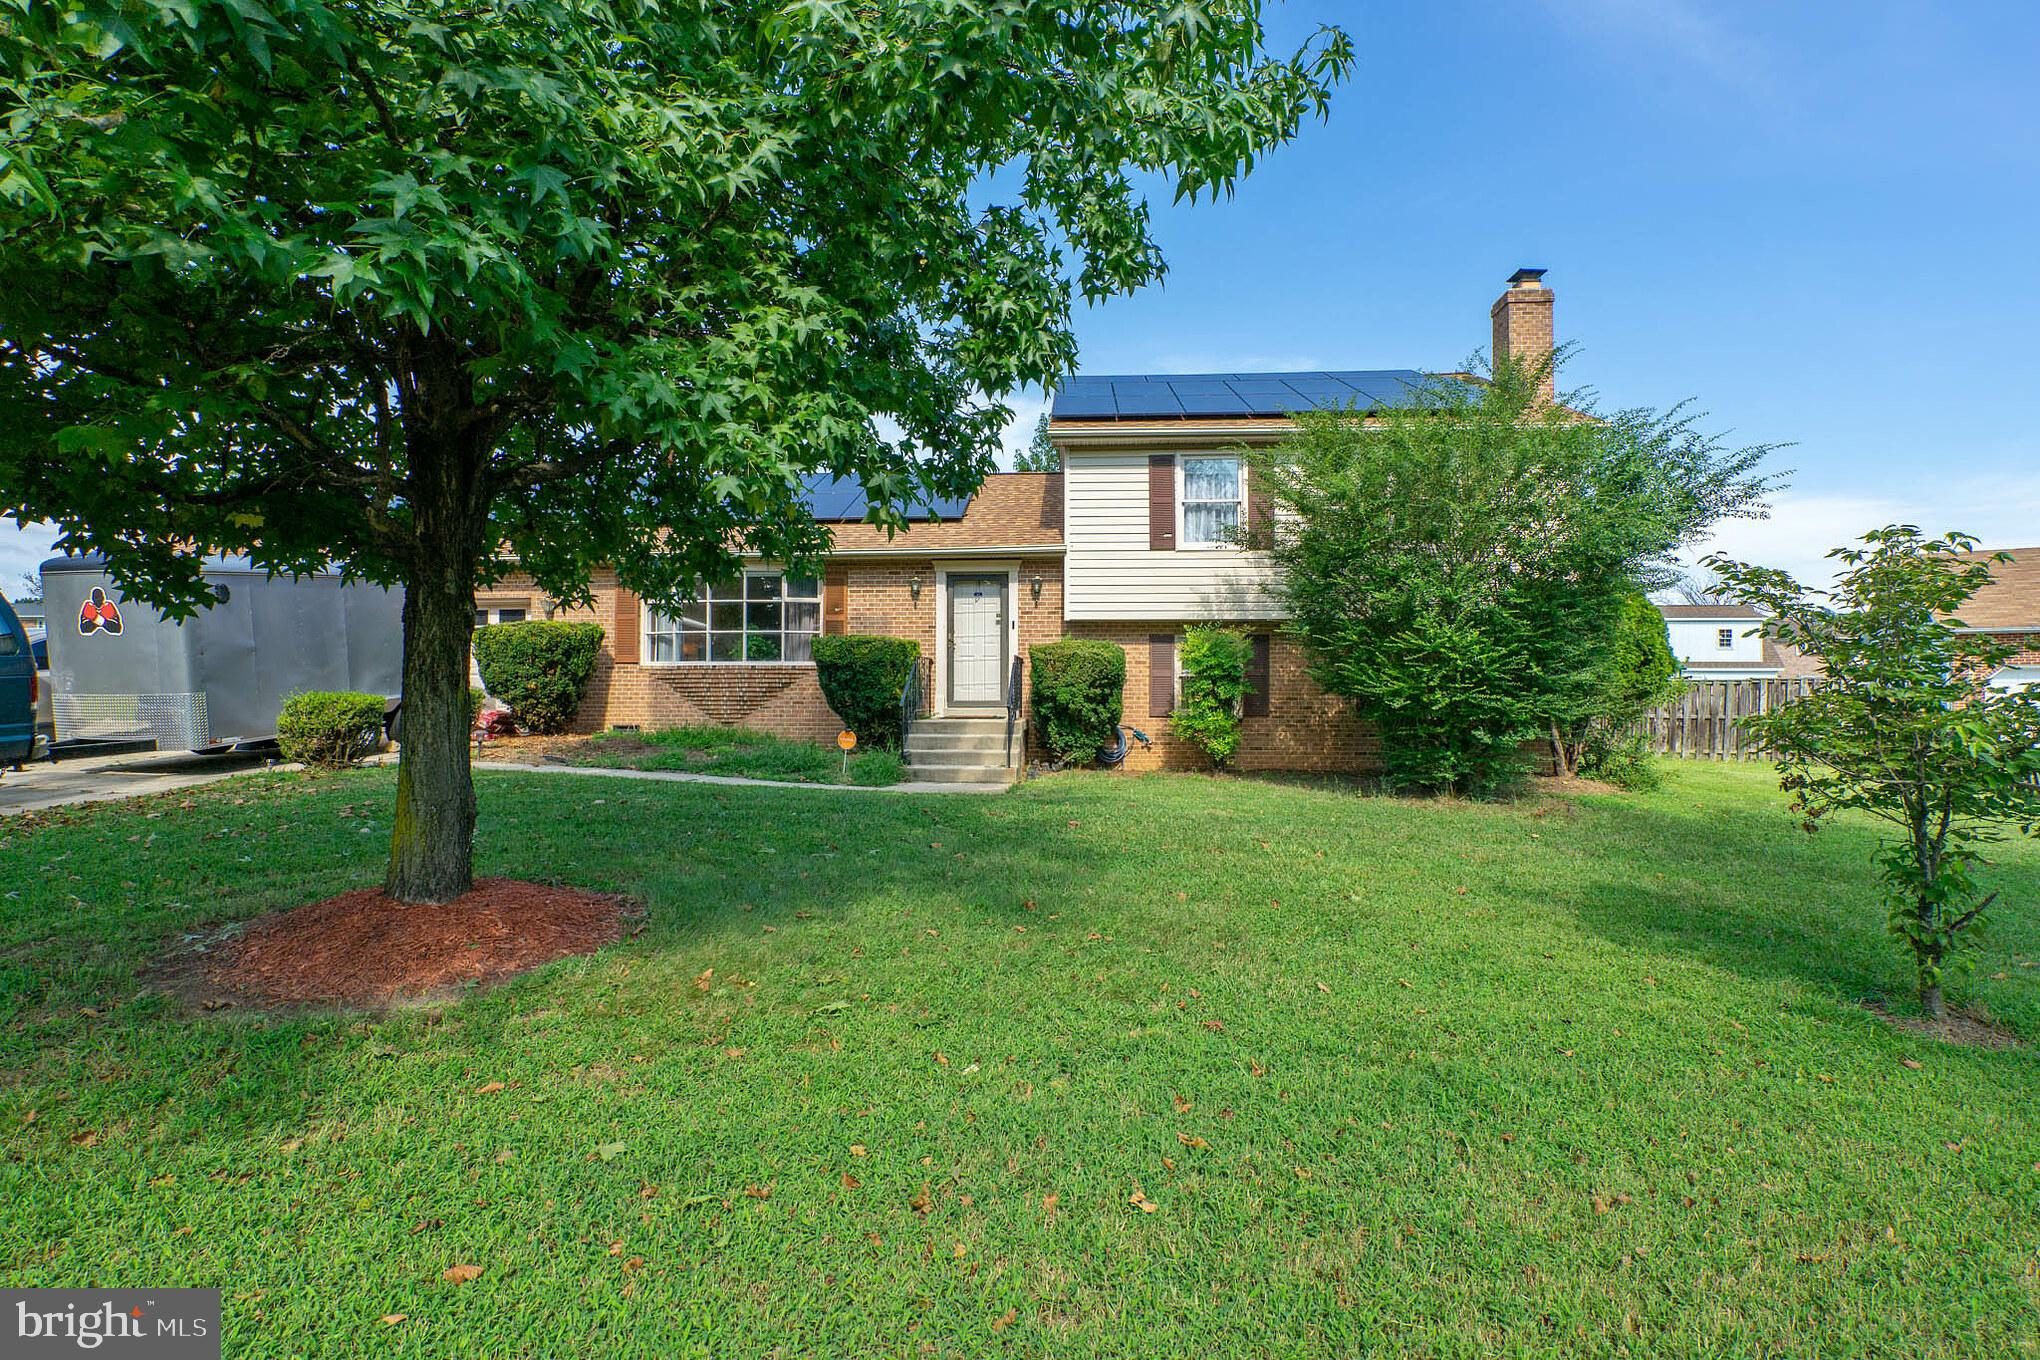 4403 WANDERING WAY, TEMPLE HILLS, MD 20748